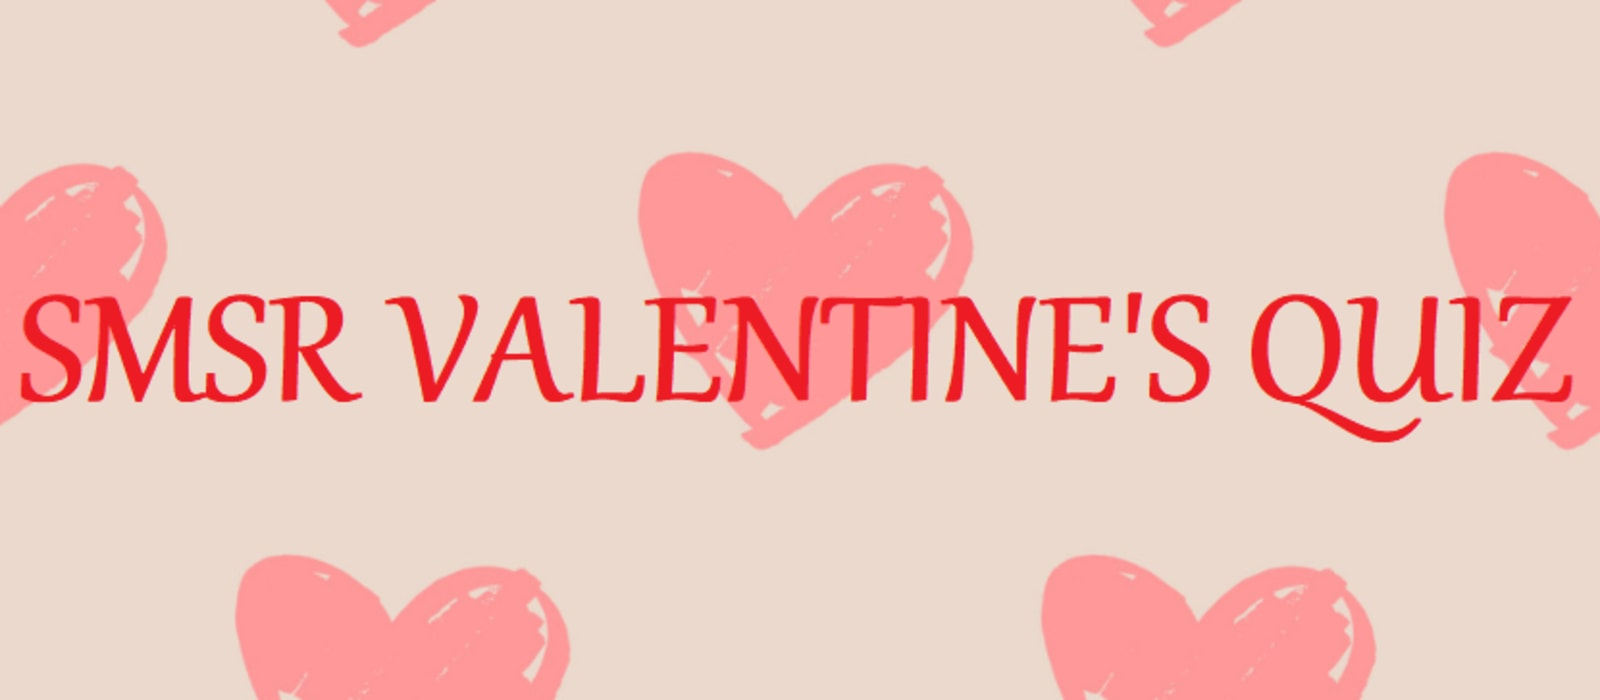 SMSR Valentine's virtual quiz